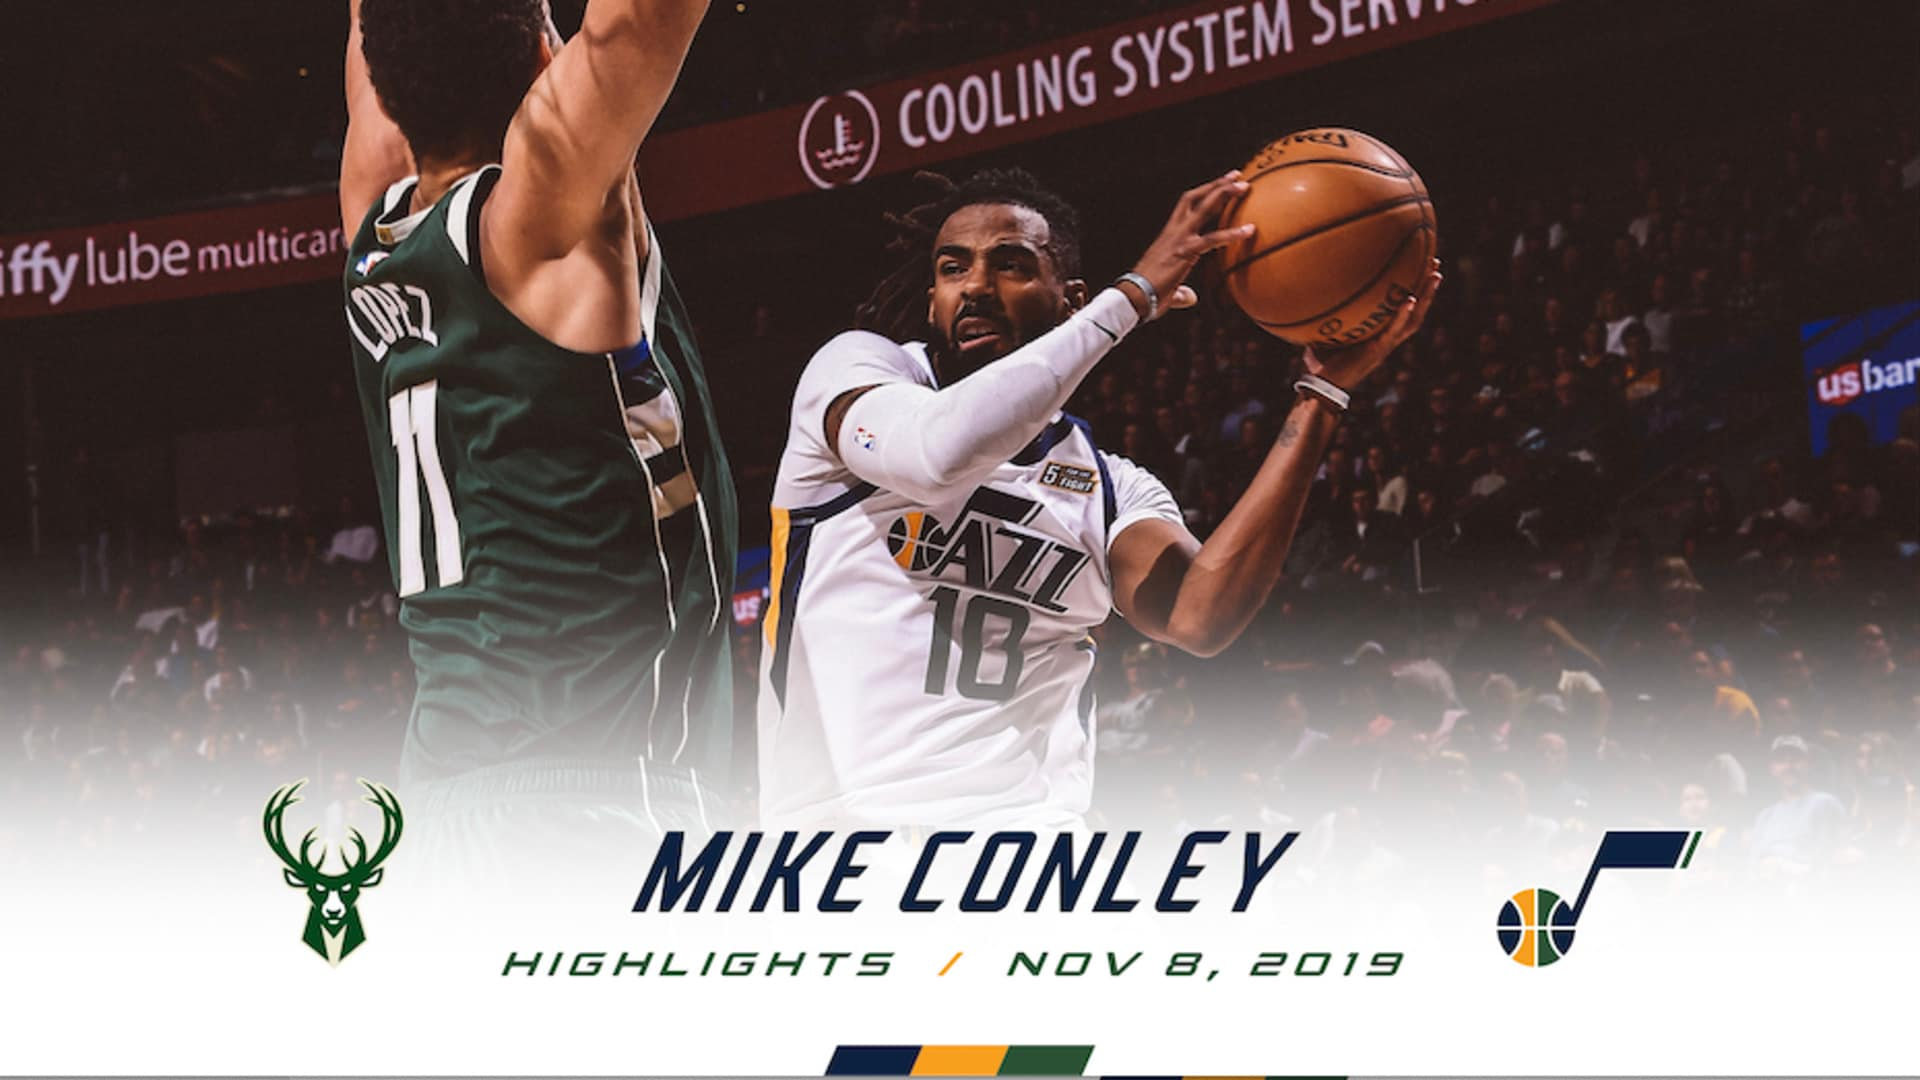 Highlights: Mike Conley - 20 points, 3 assists